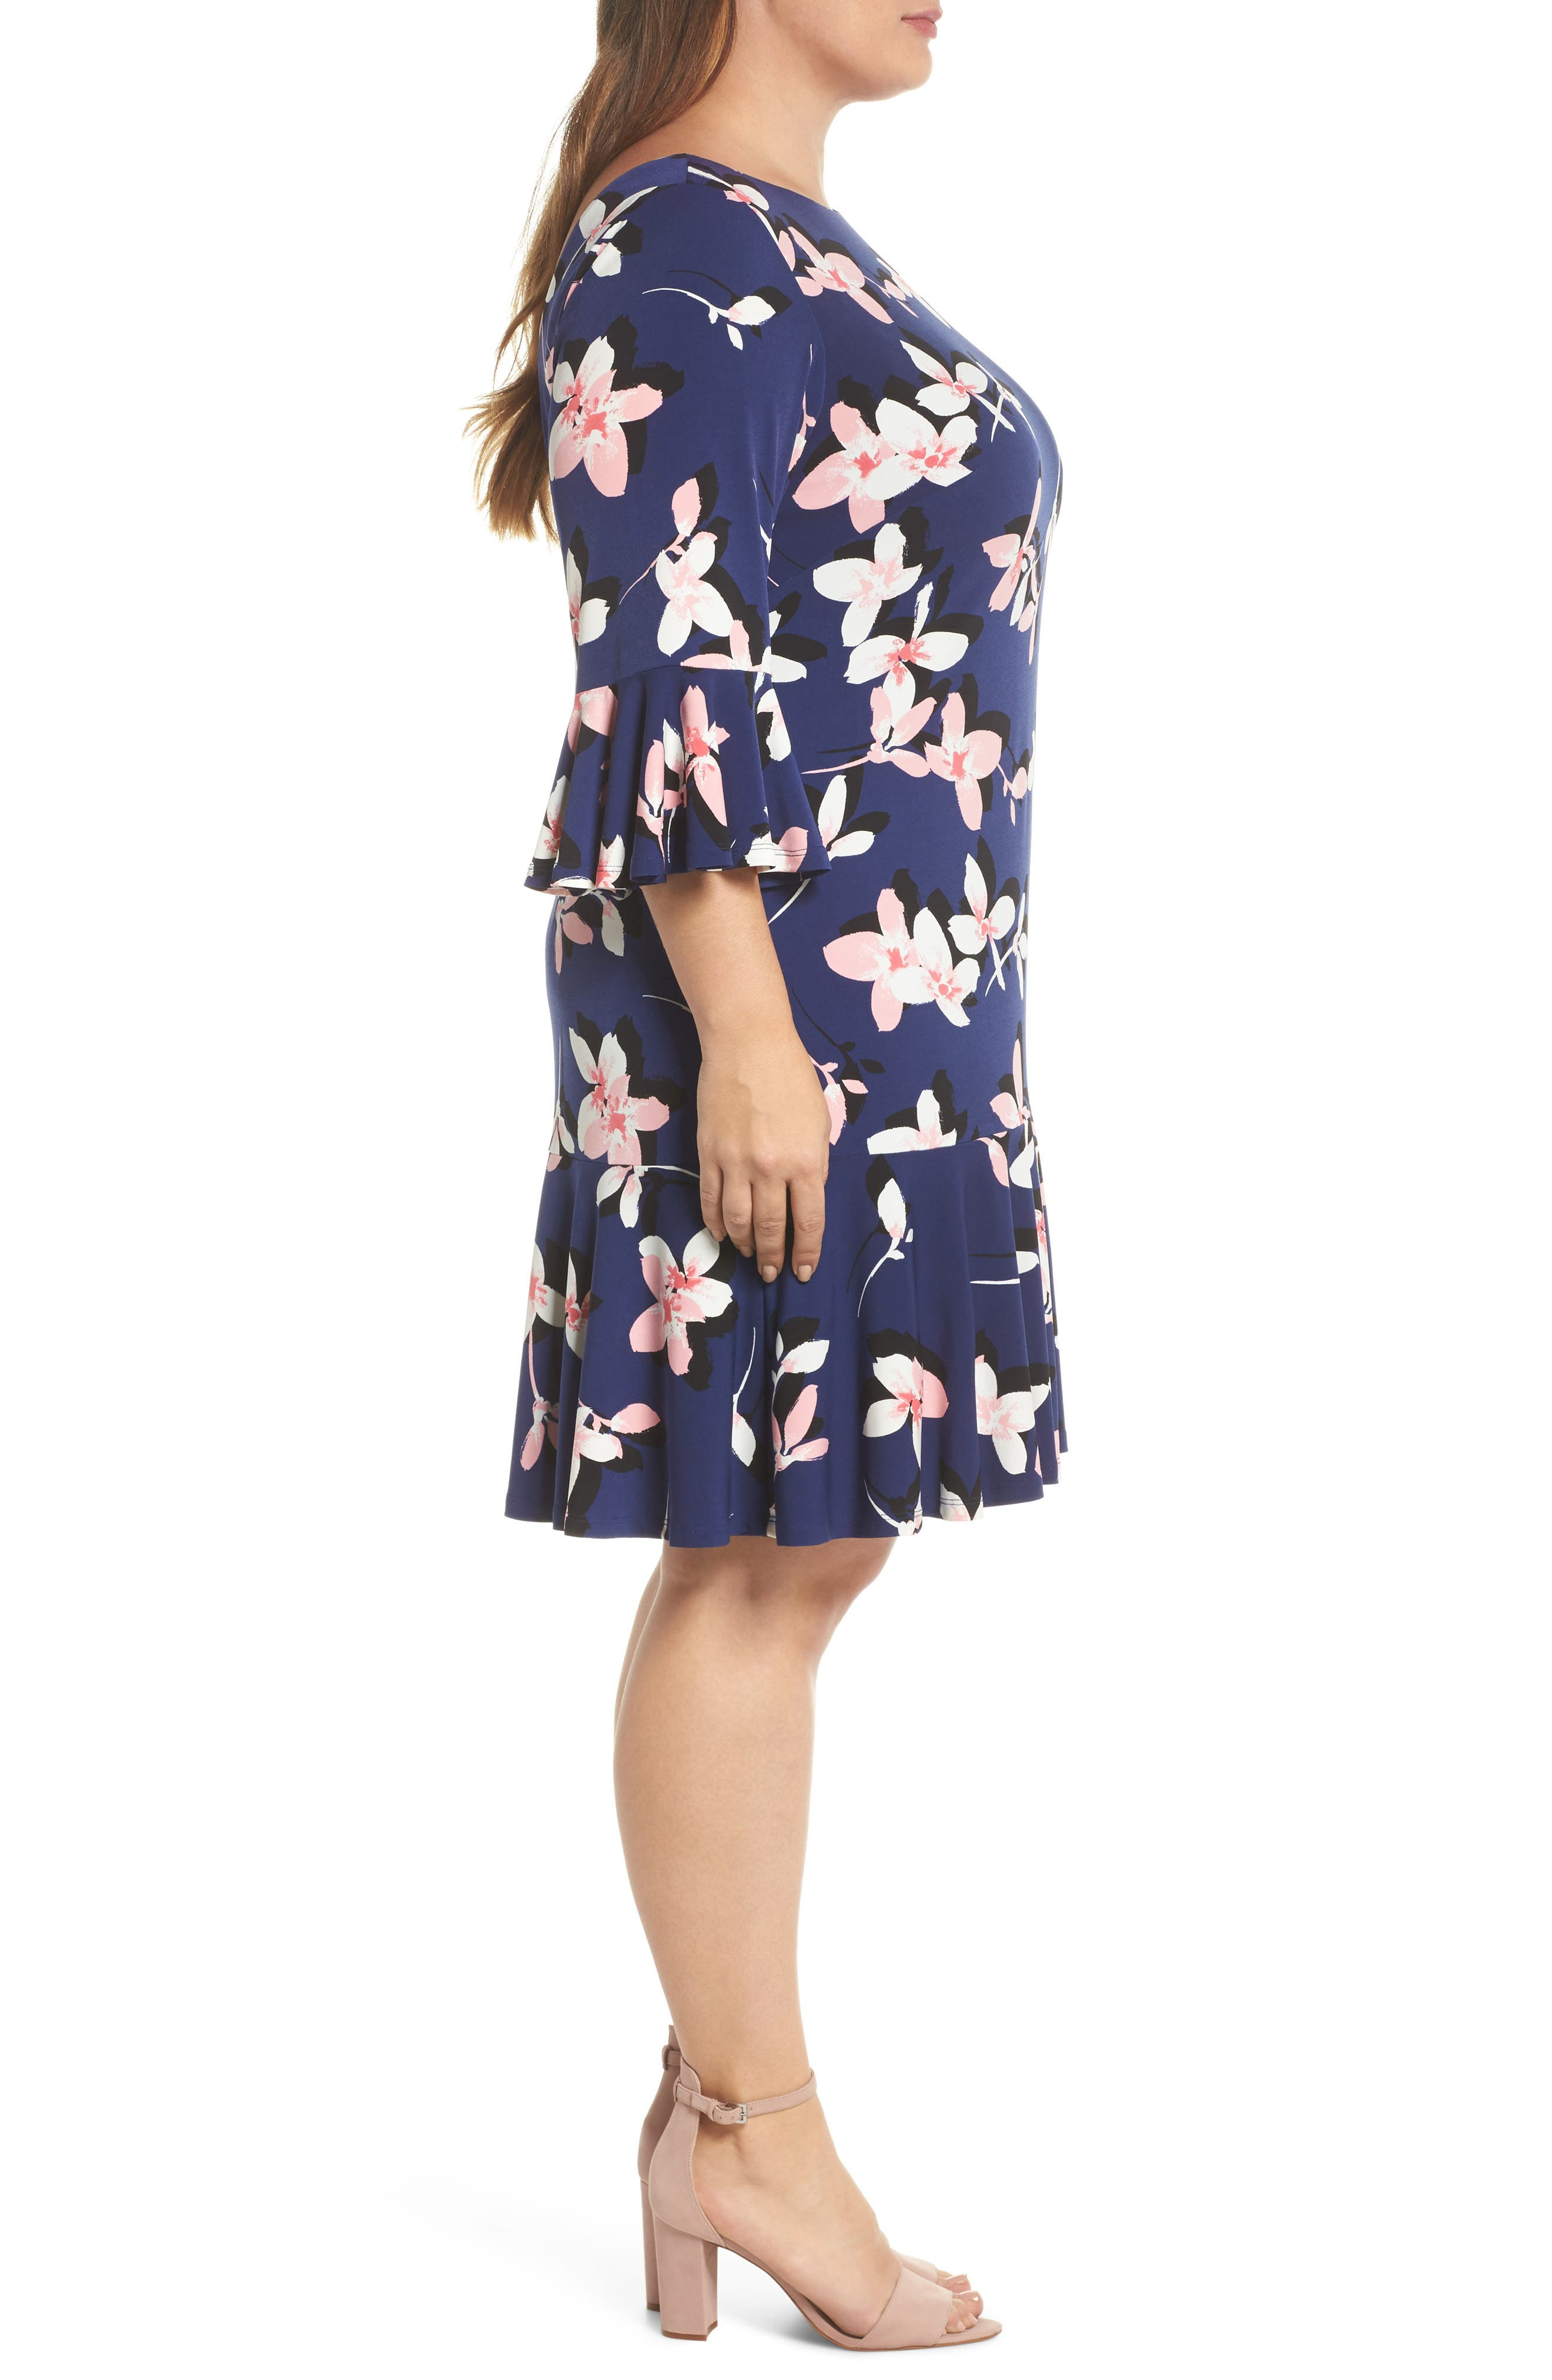 Floral Print Bell Sleeve Dress,                             Alternate thumbnail 3, color,                             Navy/ Pink